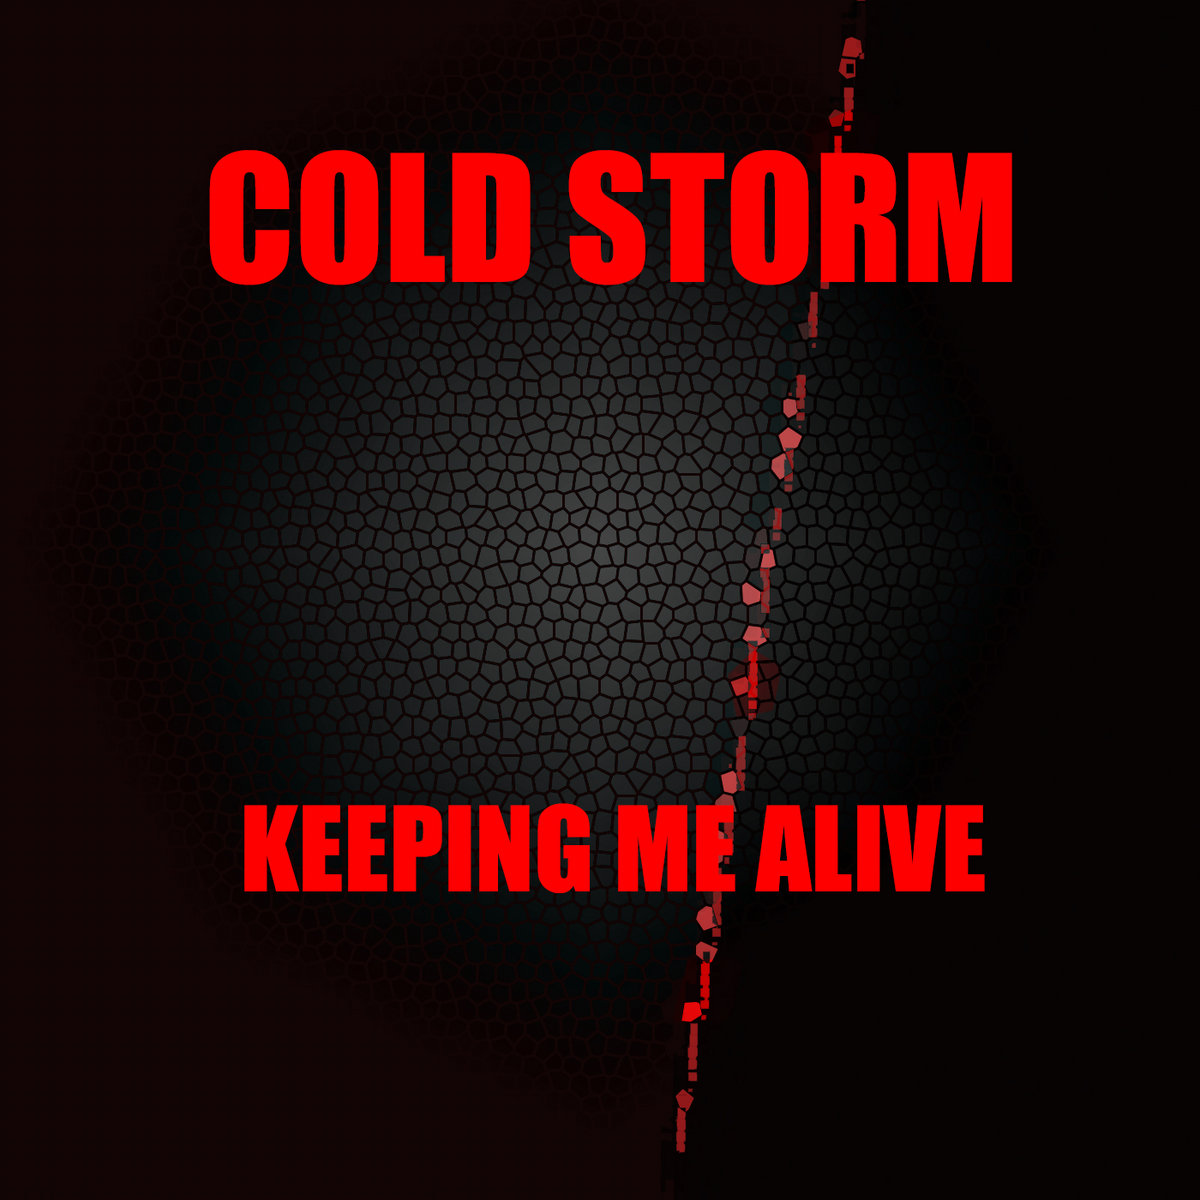 Cold Storm - Keeping me alive - Cold Storm - Keeping me alive